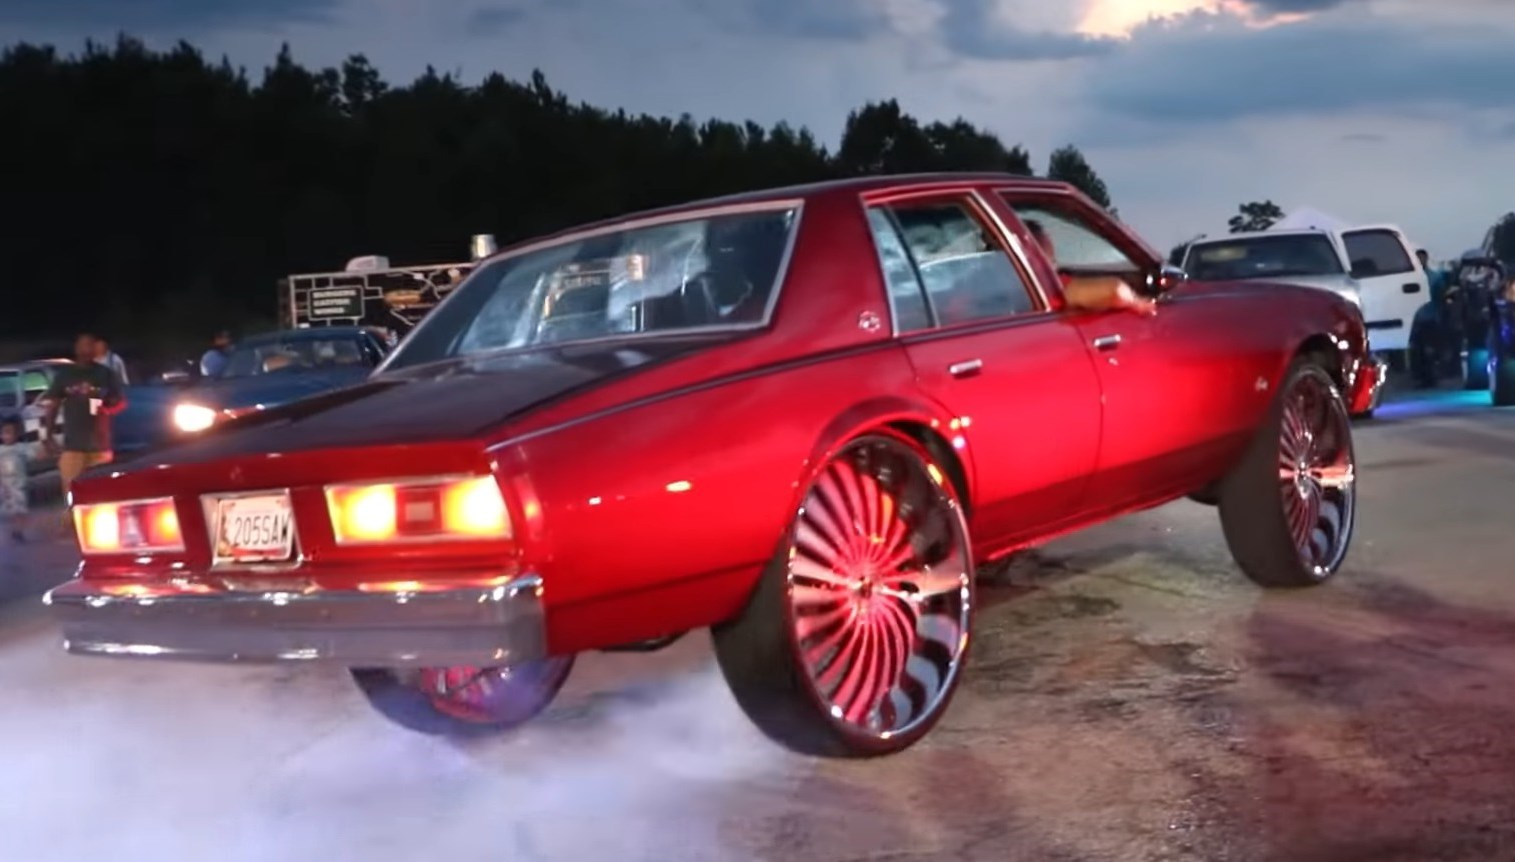 Candy Red 79 Chevy Impala on 30 inch. Leather Interior ...